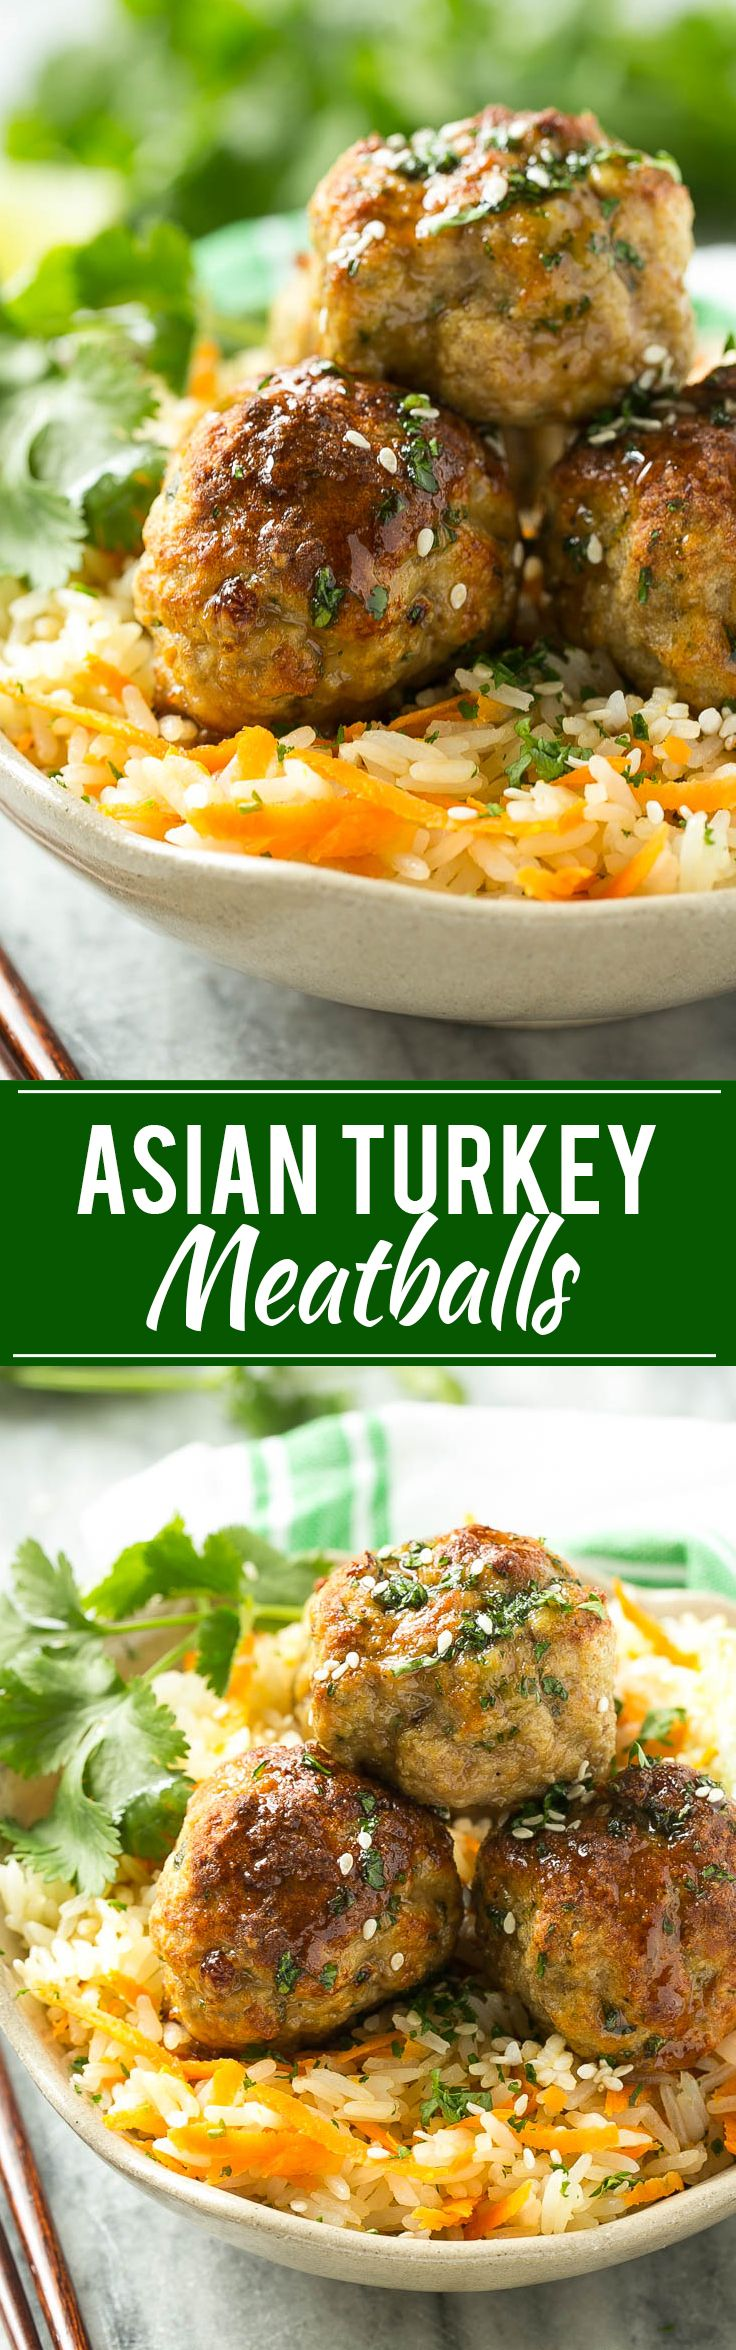 Baked Asian Turkey Meatballs and Carrot Rice - This recipe for asian turkey meatballs involves light and tender meatballs that are seasoned with asian flavors, tossed in a honey garlic sauce and served over a colorful carrot rice.